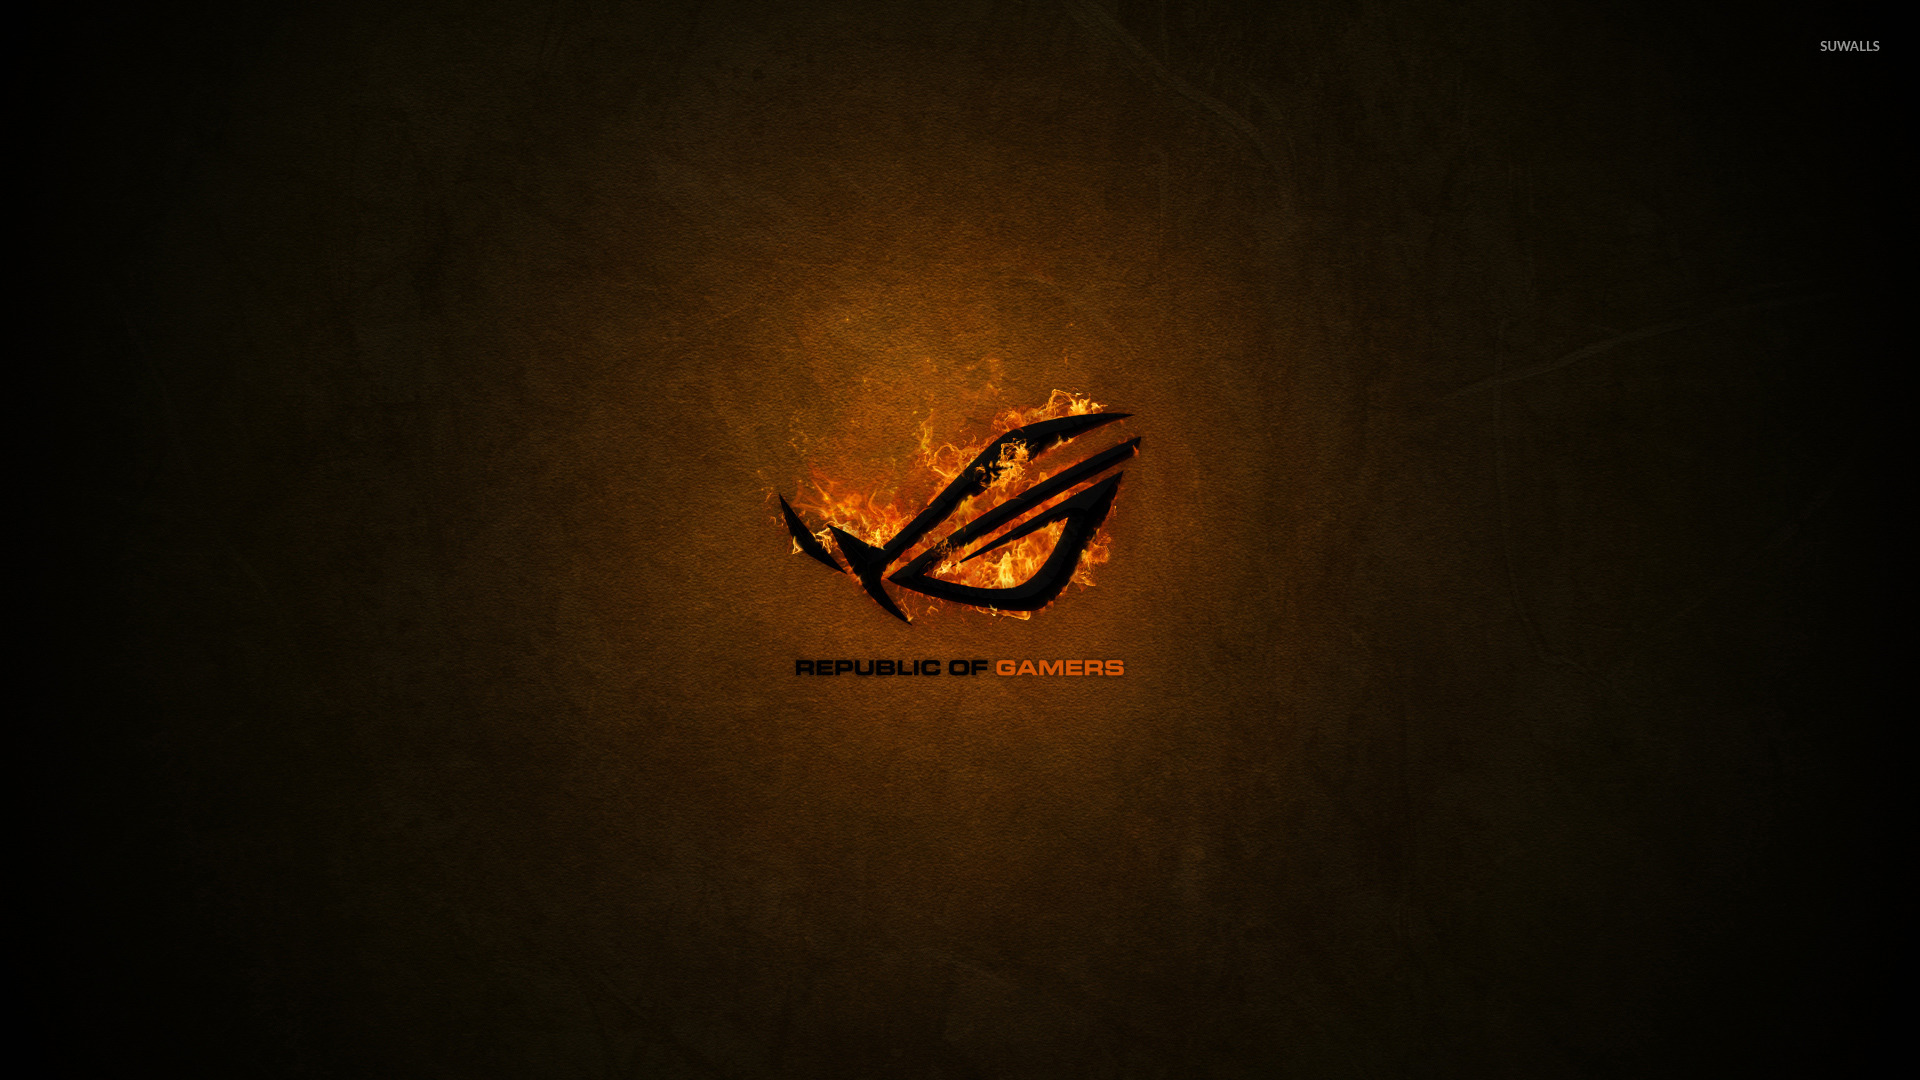 Asus Rog Wallpaper - Republic Of Gamers , HD Wallpaper & Backgrounds